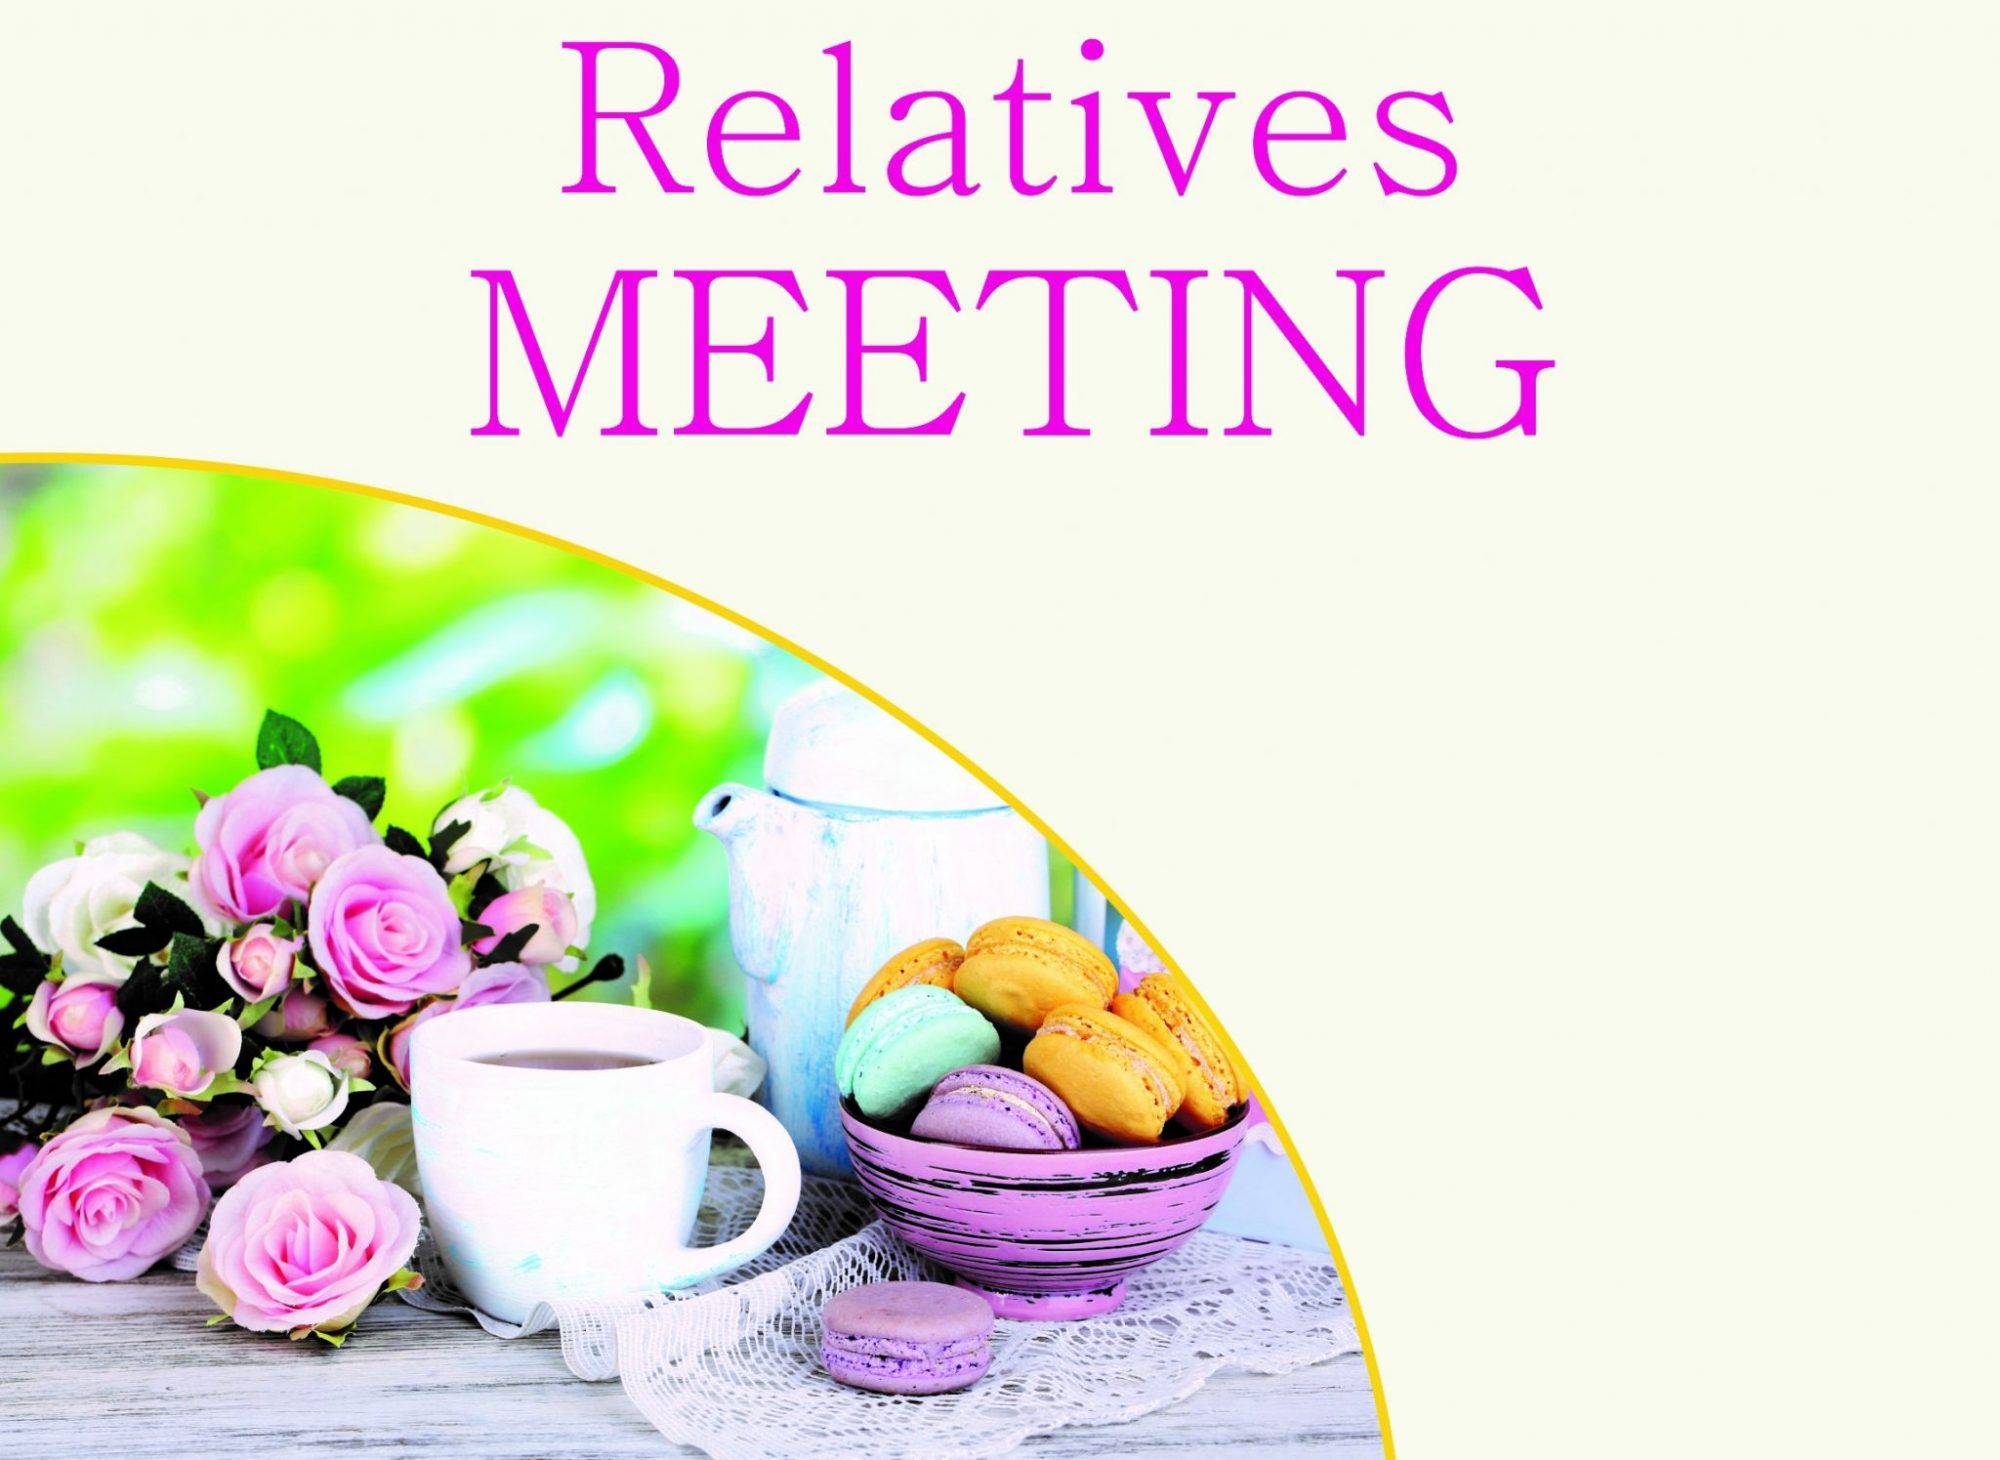 Relatives meeting